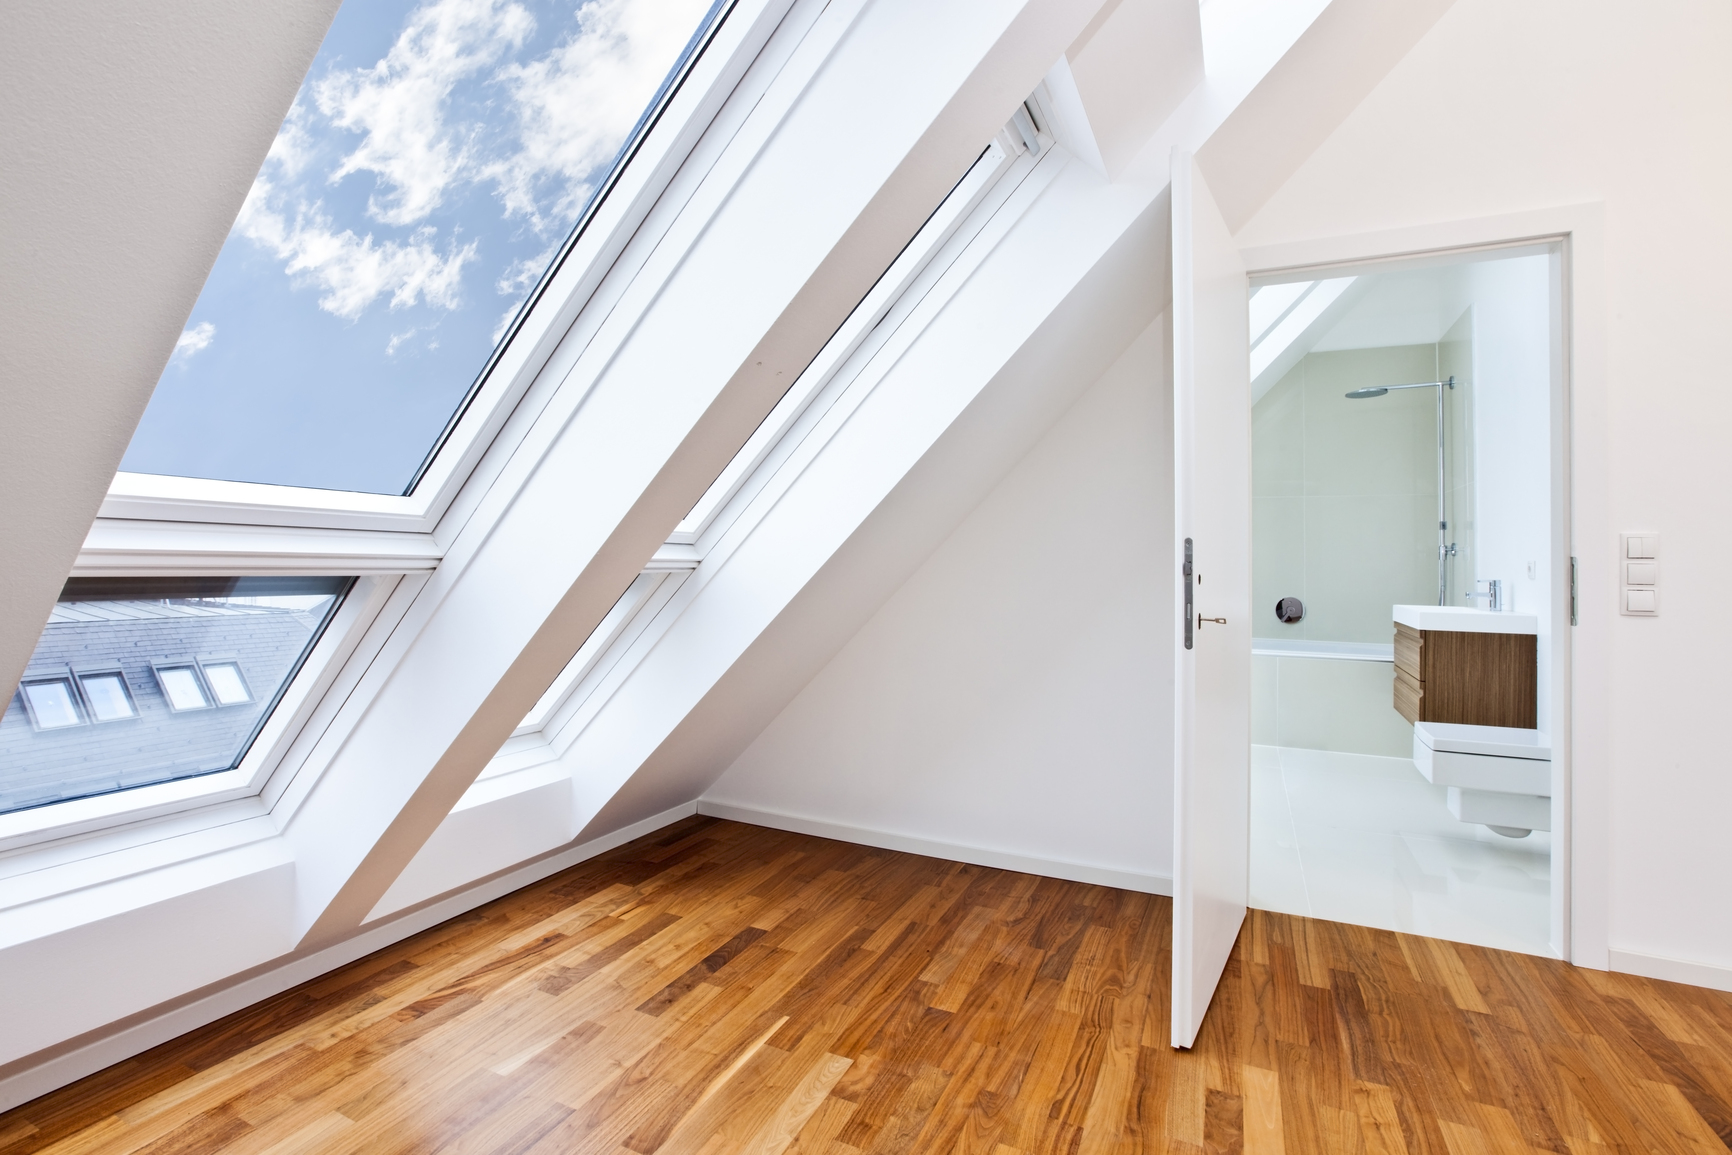 Contemporary apartment with sunlit modern bathroom and look through roof-top-window.